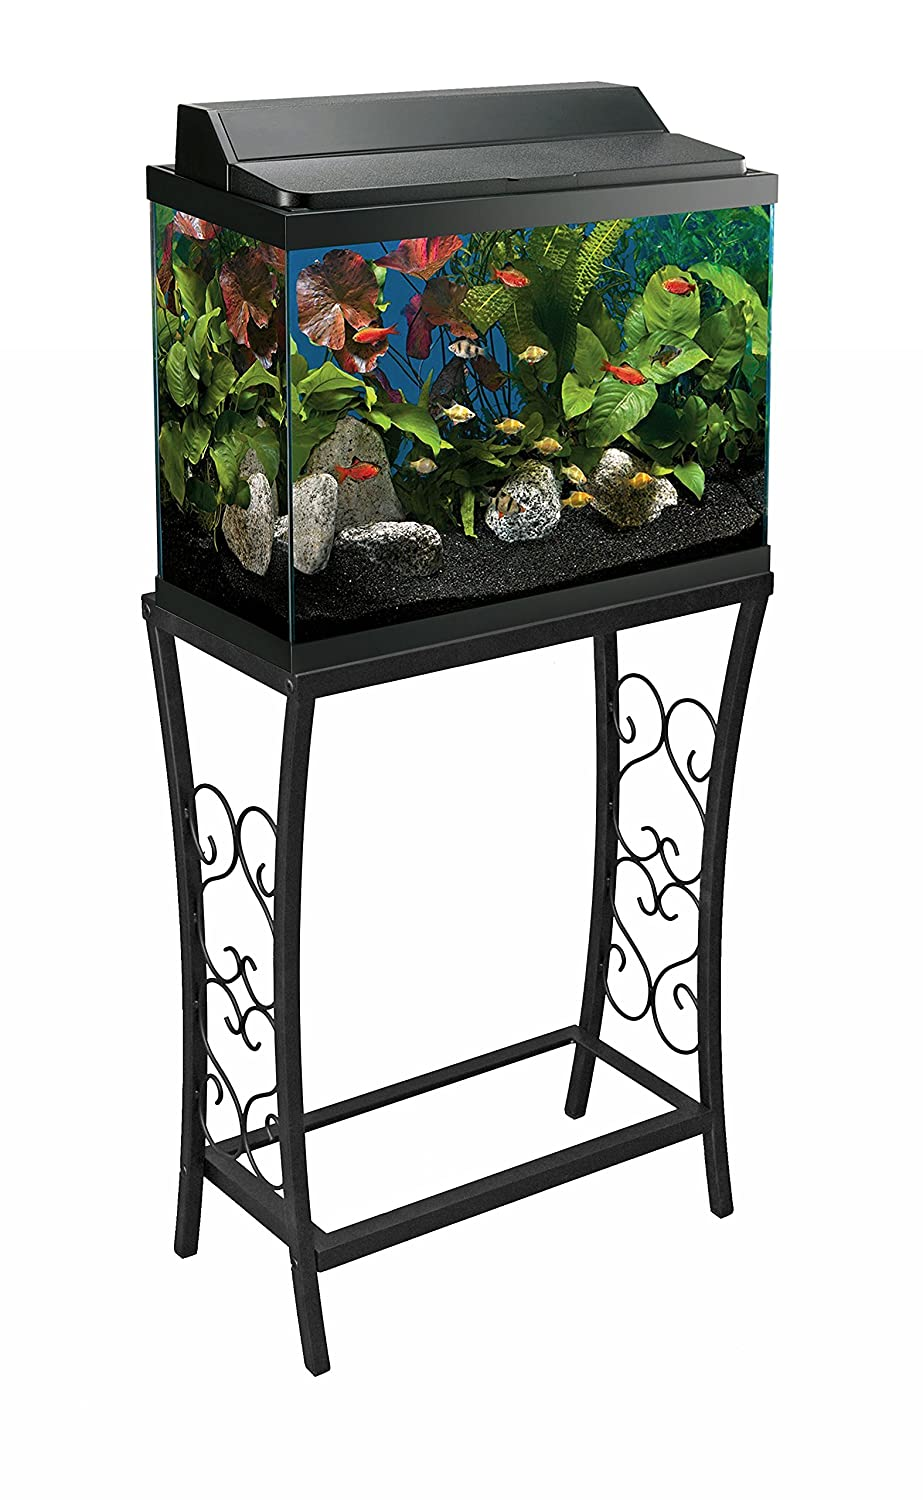 Aquatic Fundamentals 10 gal fish tank stand